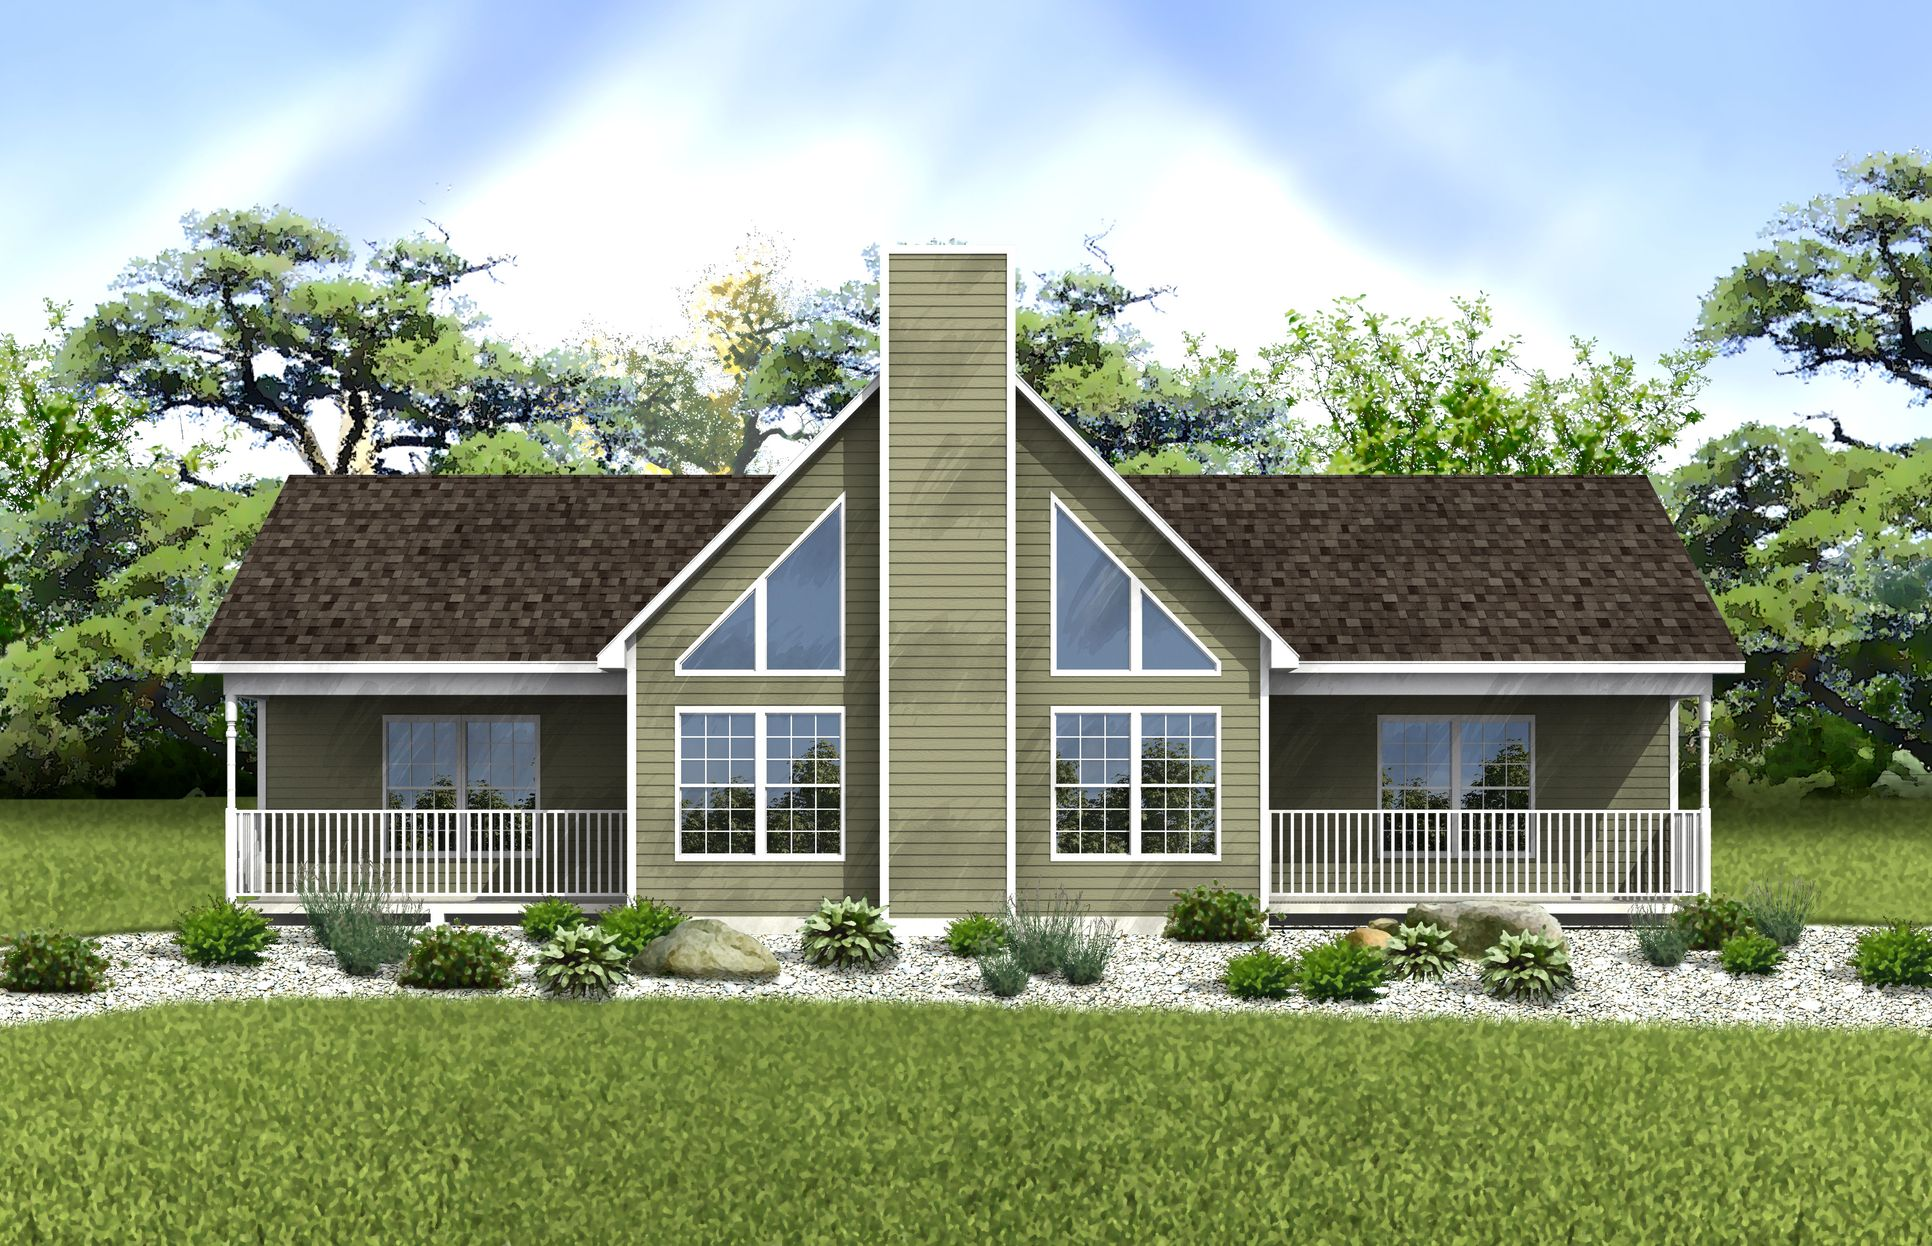 Lackawaxen Rendering:Our Lackawaxen model is a beautiful single story chalet home, perfect for both vacationing and year round living!